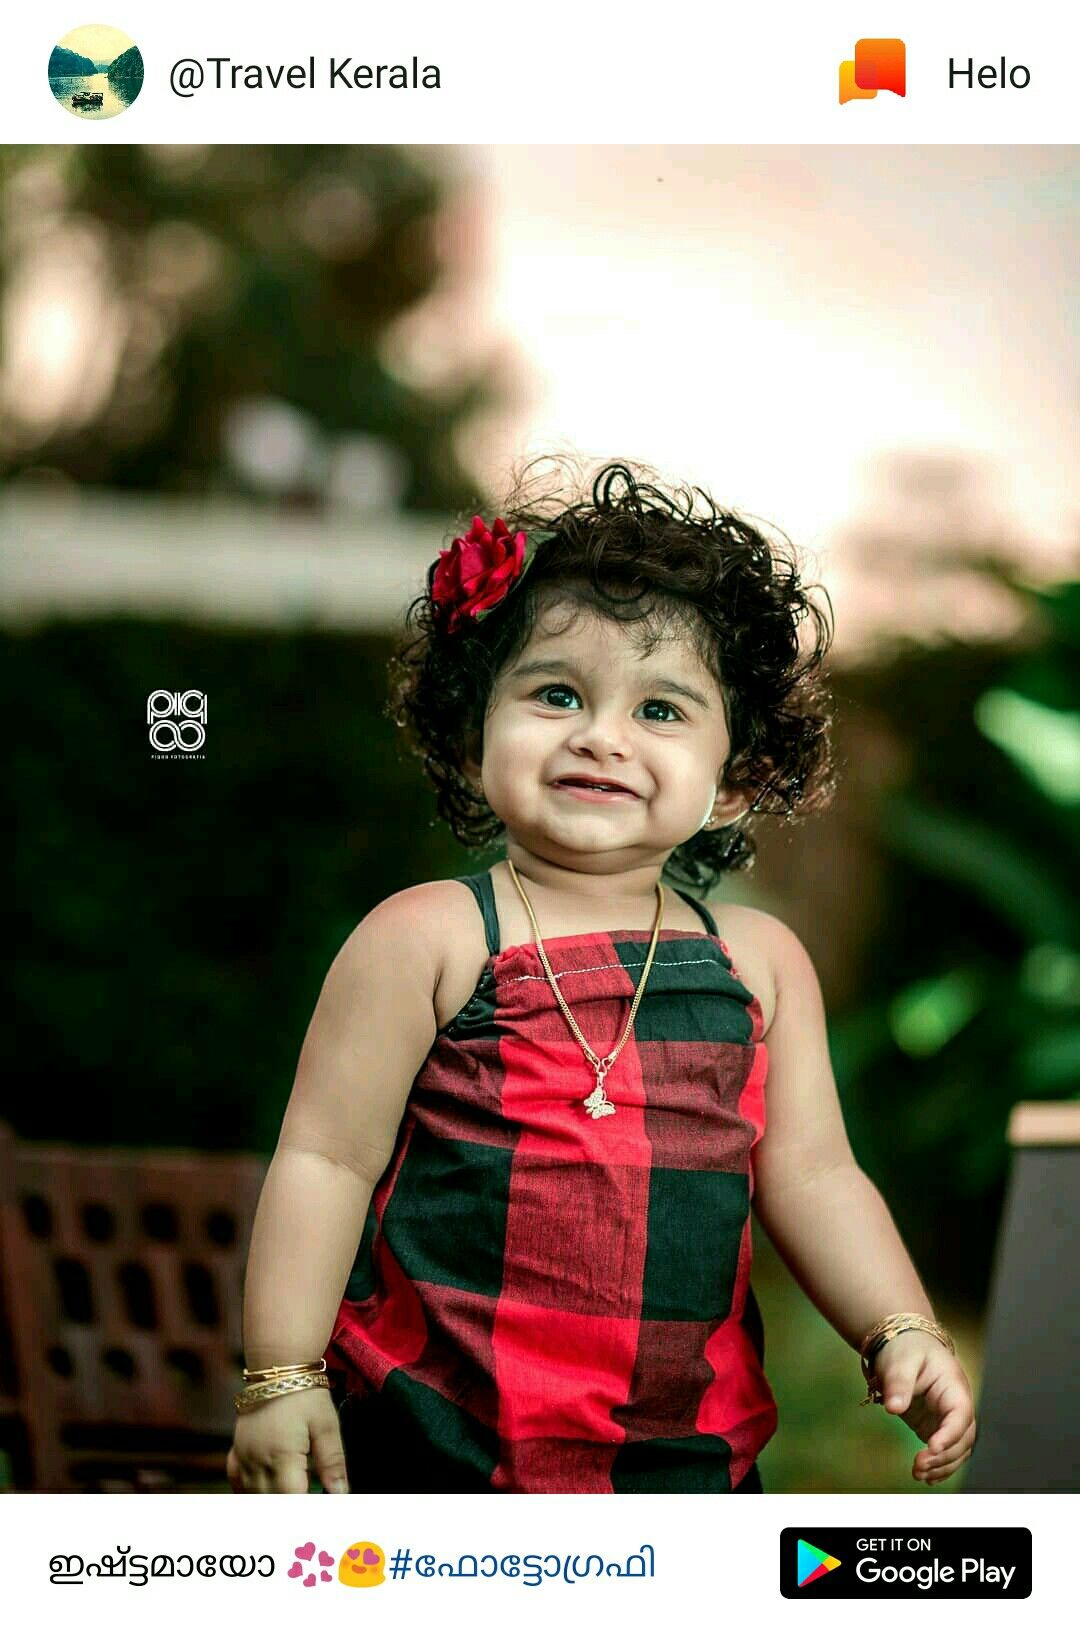 Cute baby girl cute babies baby art kerala girls dresses funny